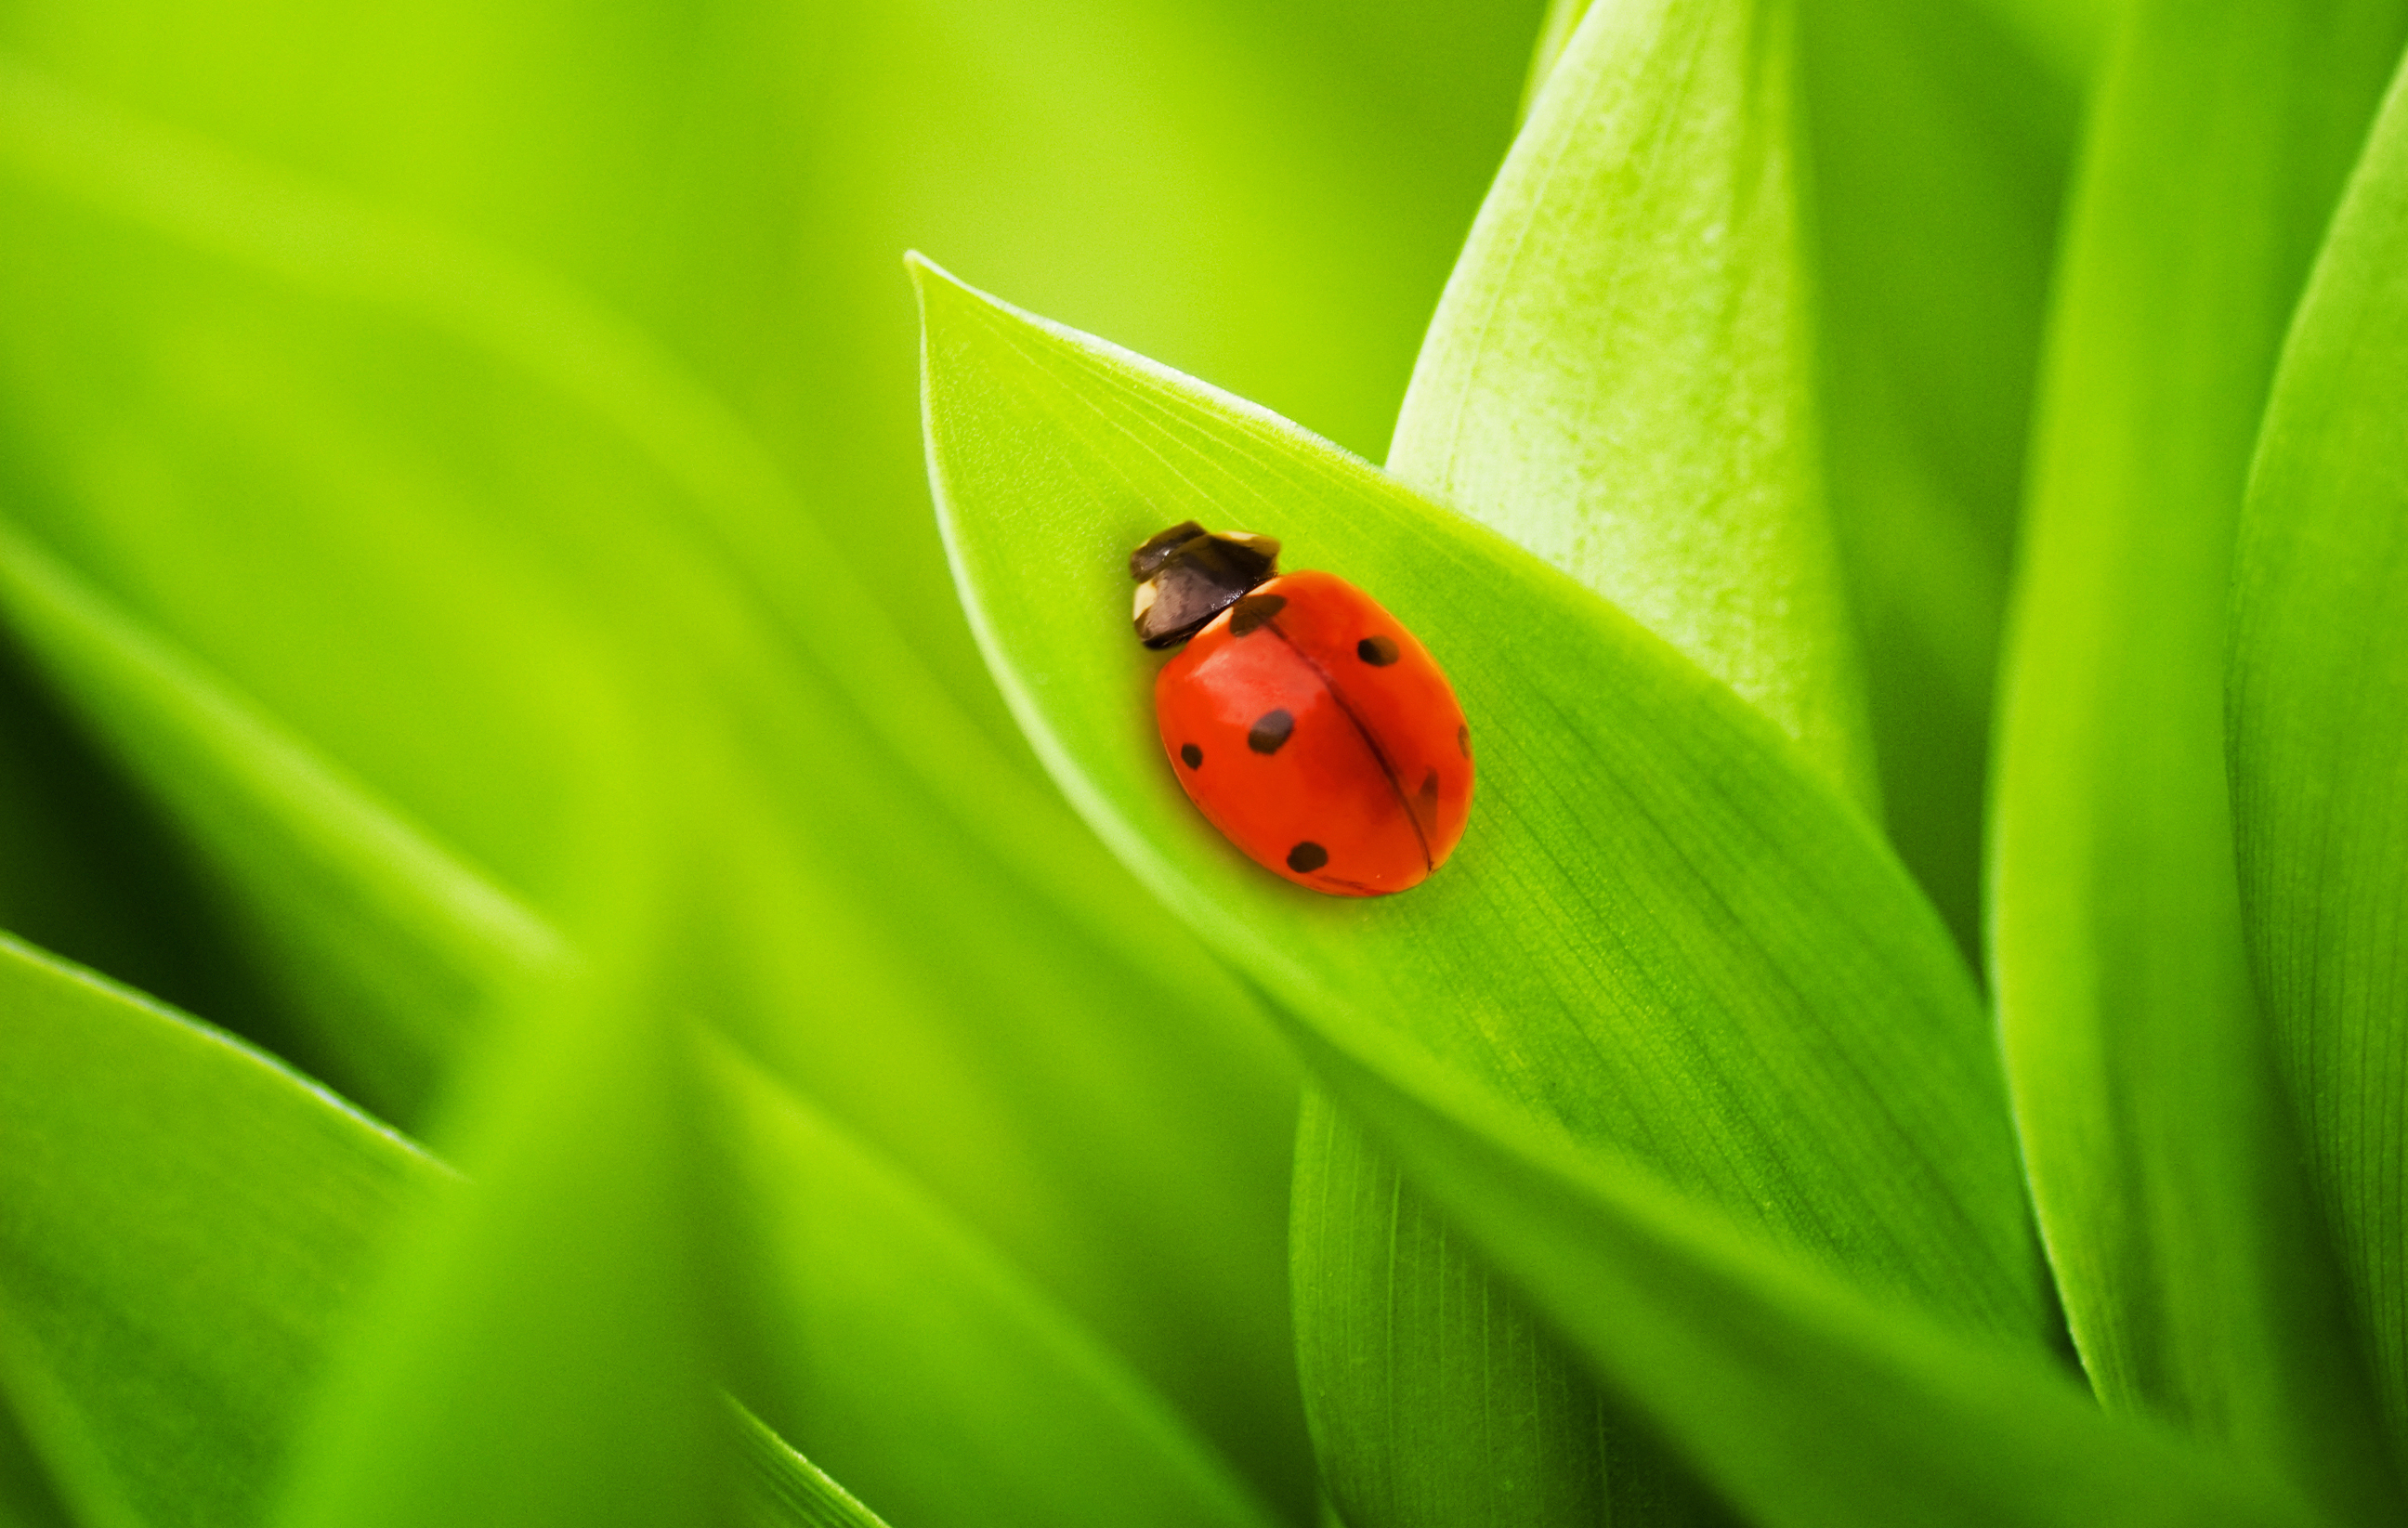 12420 download wallpaper Grass, Insects, Ladybugs screensavers and pictures for free